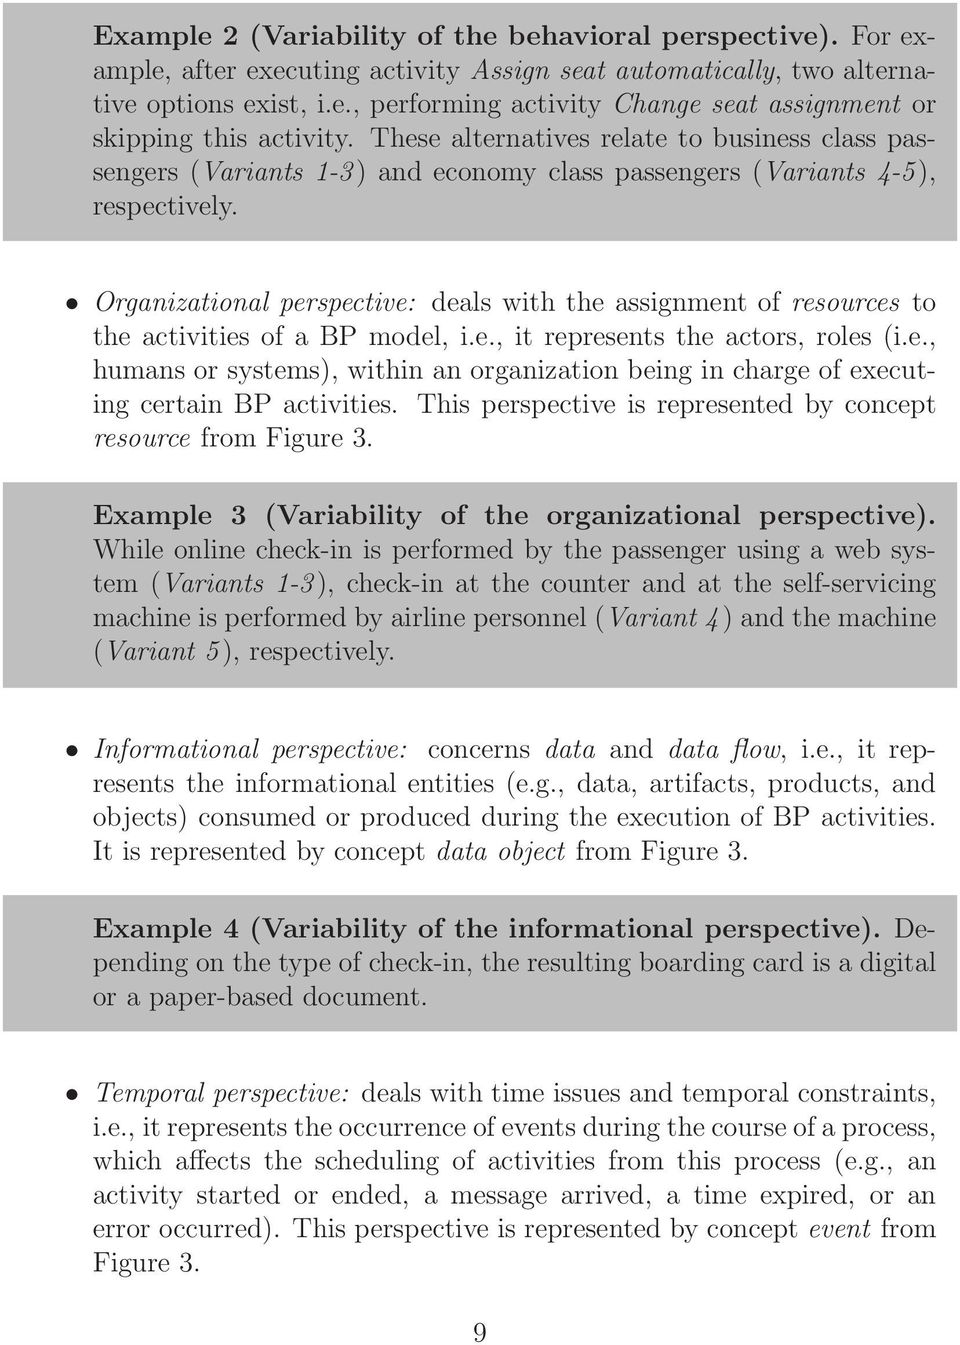 Organizational perspective: deals with the assignment of resources to the activities of a BP model, i.e., it represents the actors, roles (i.e., humans or systems), within an organization being in charge of executing certain BP activities.